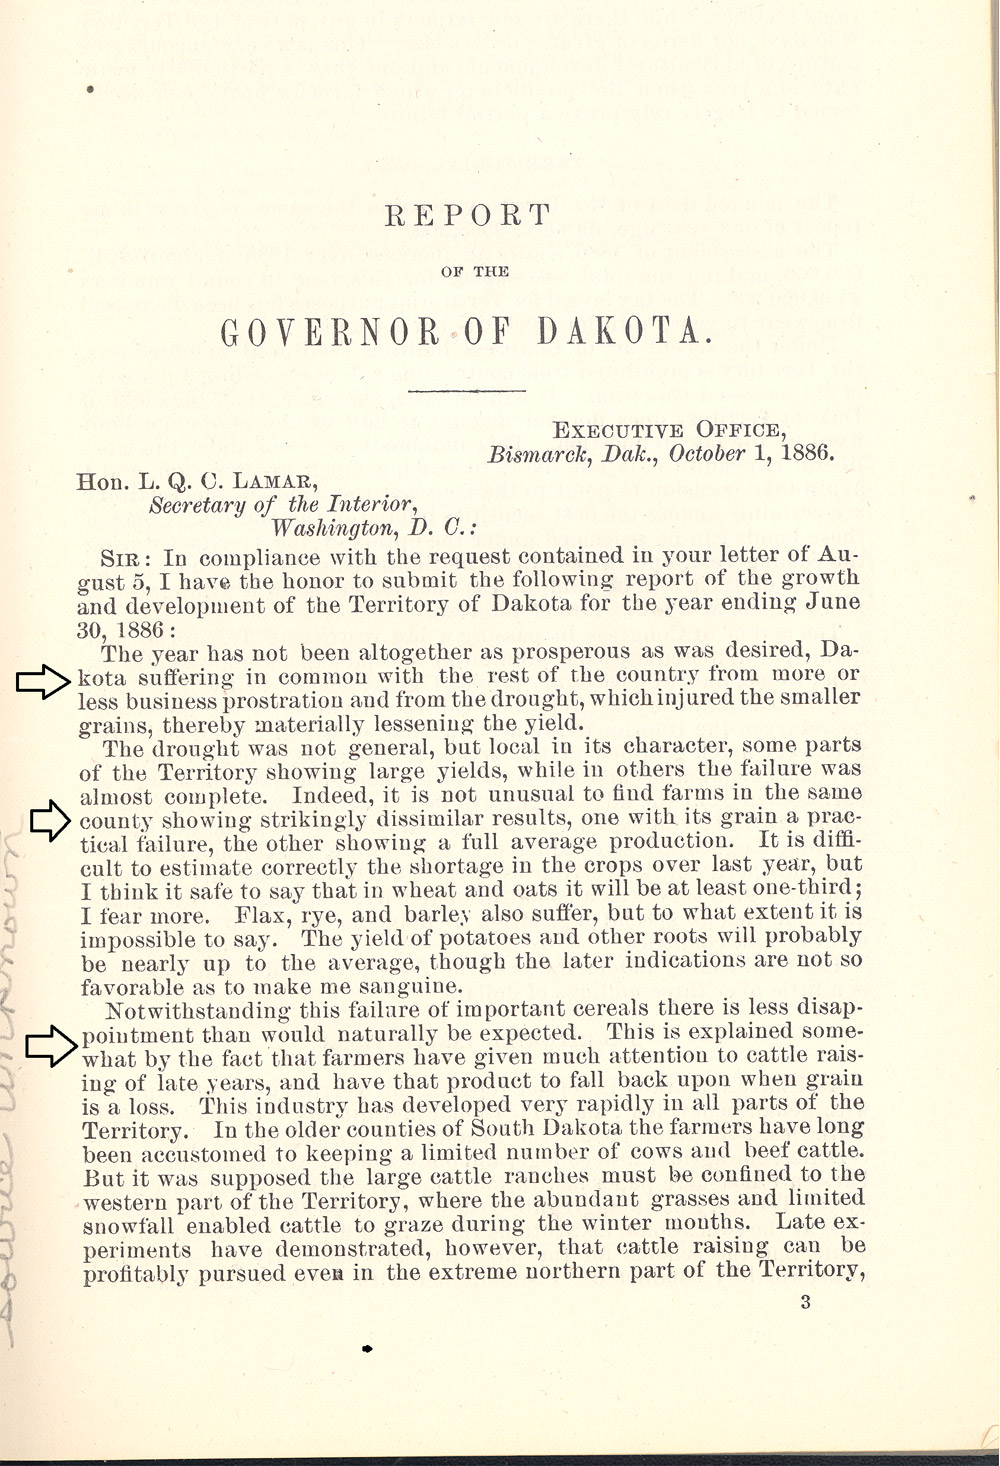 section drought north dakota studies the governor of dakota territory reported to the secretary of the interior each year because territorial